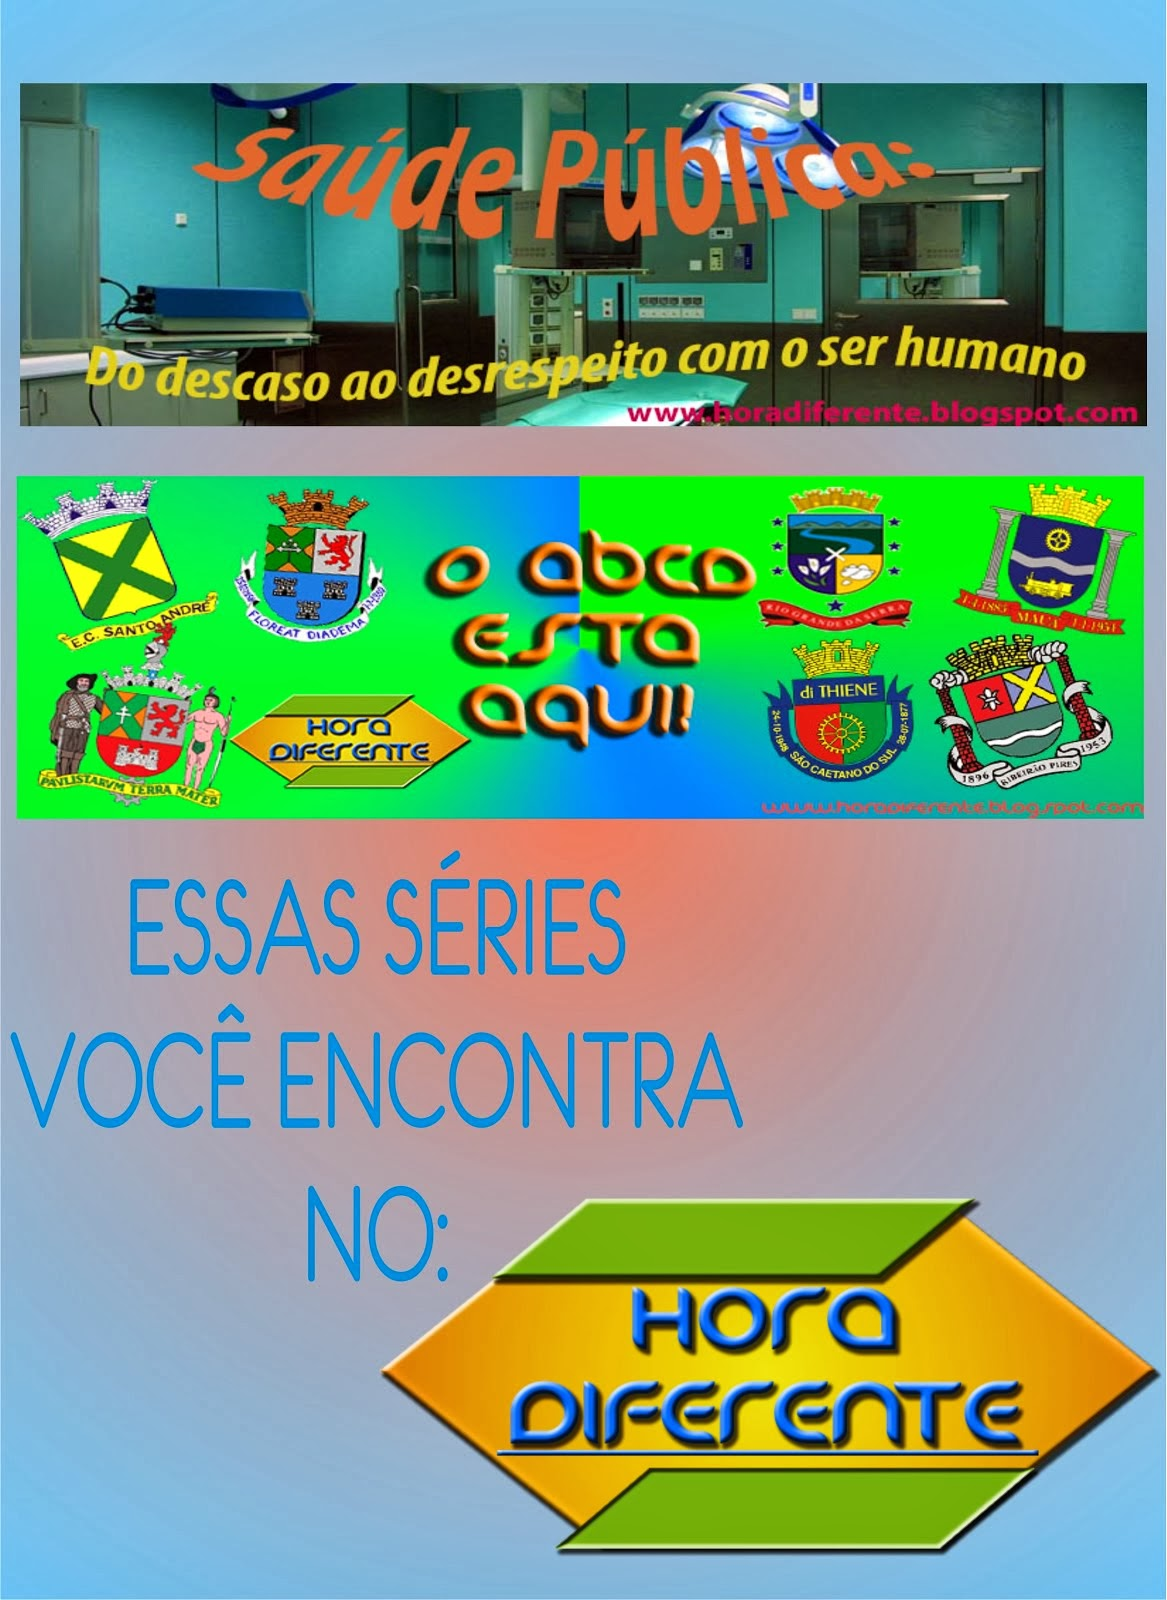 Séries do blog!